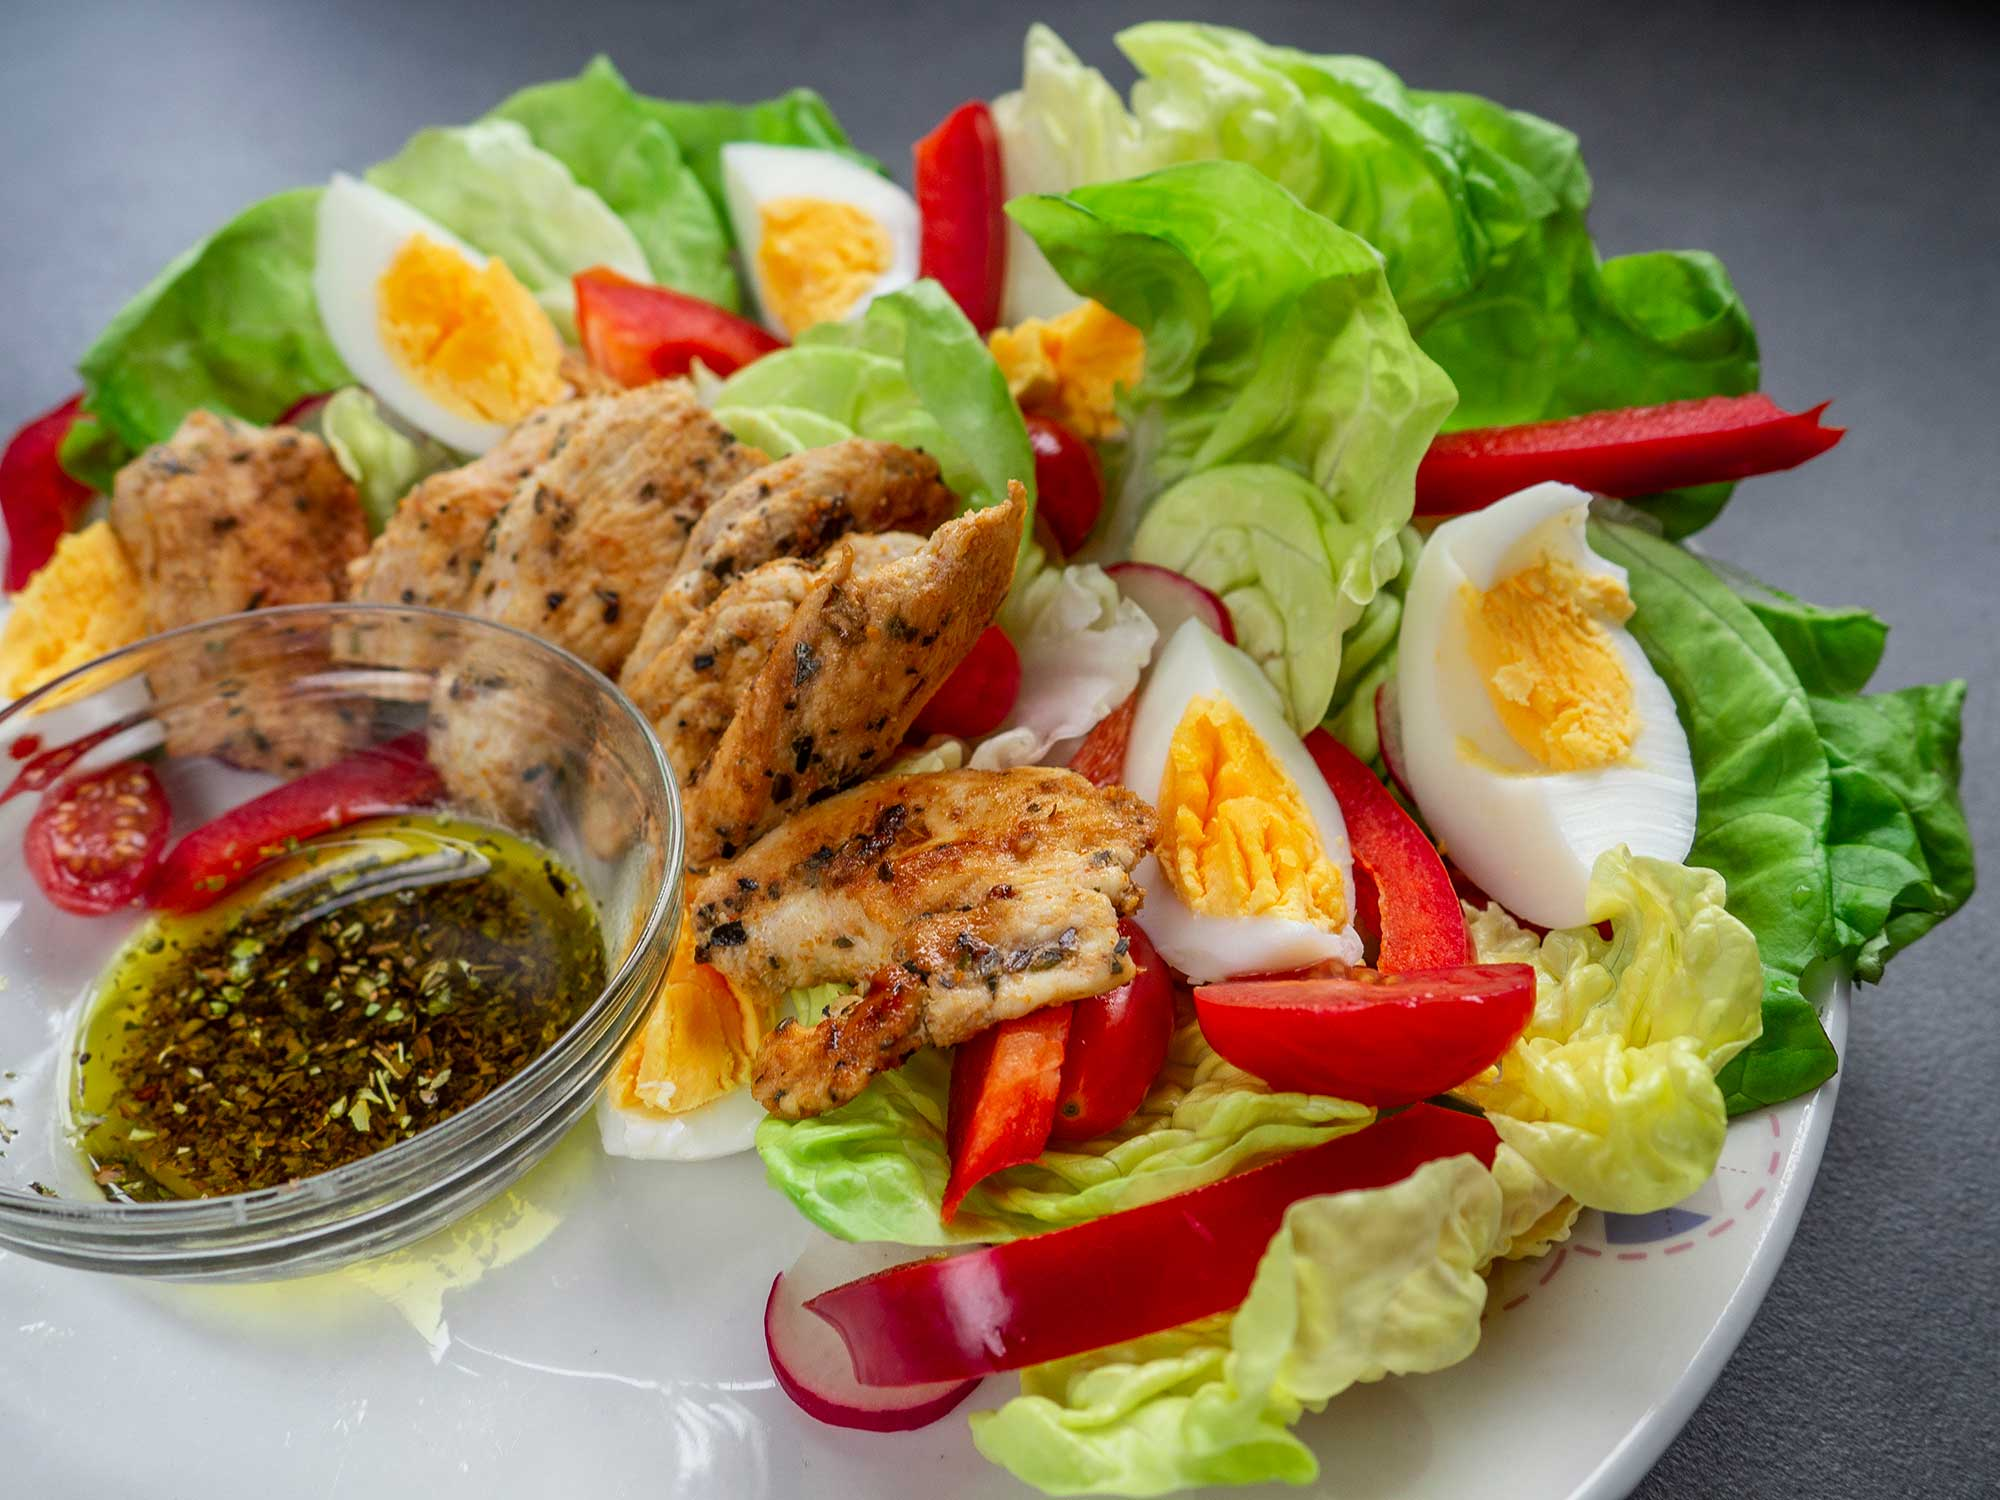 Salad with Grilled Chicken and Eggs preparation serves one